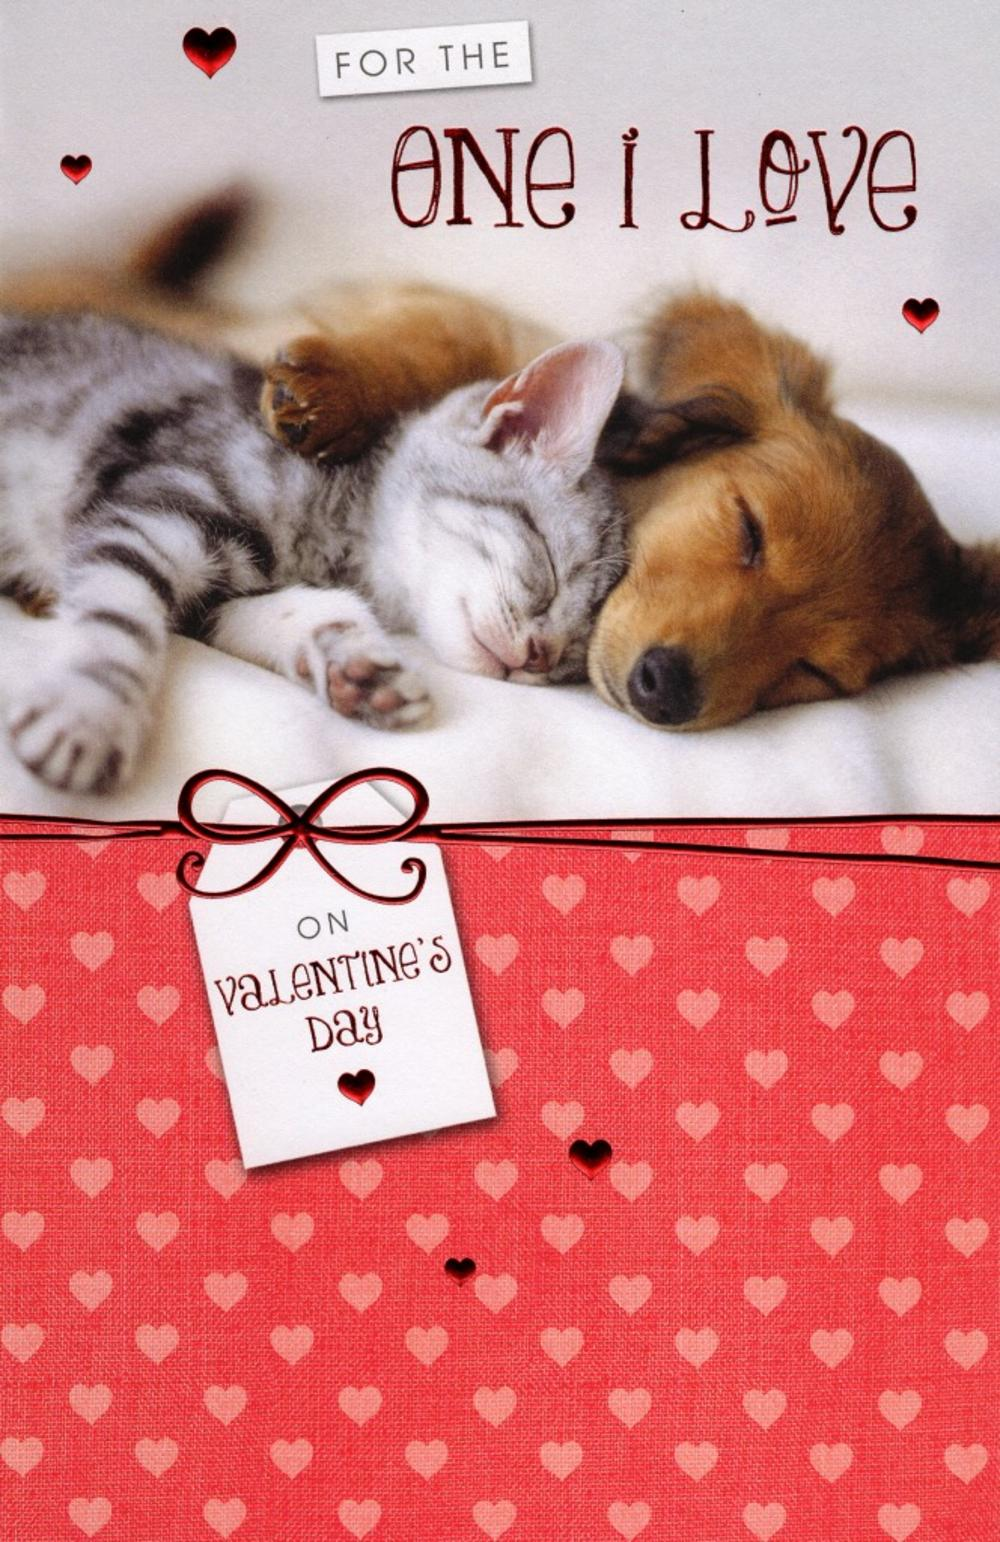 The One I Love Cat & Dog Valentine's Day Card